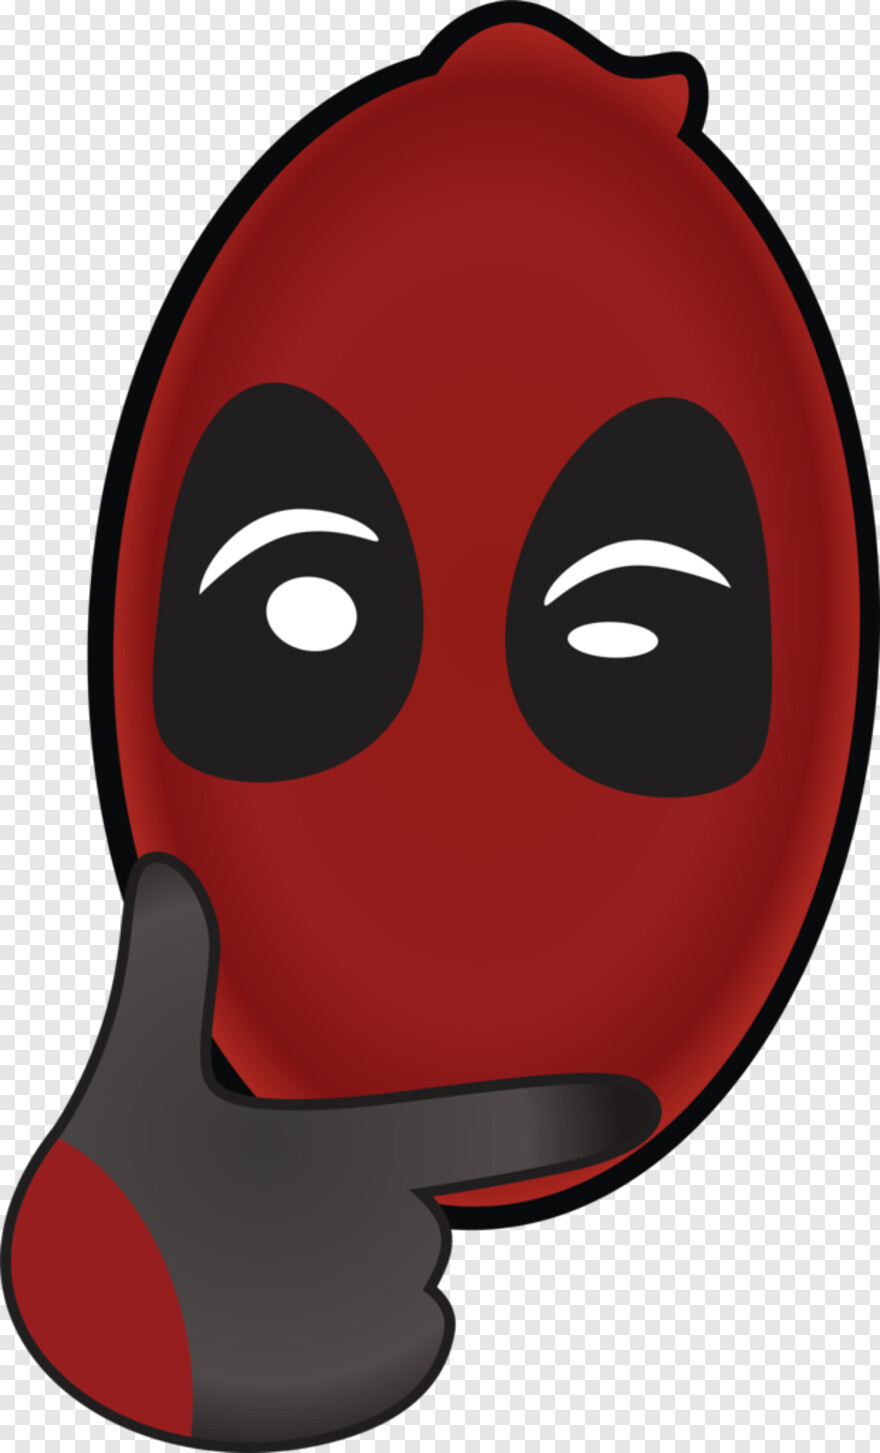 Deadpool Face - Hover To Zoom, HD Png Download